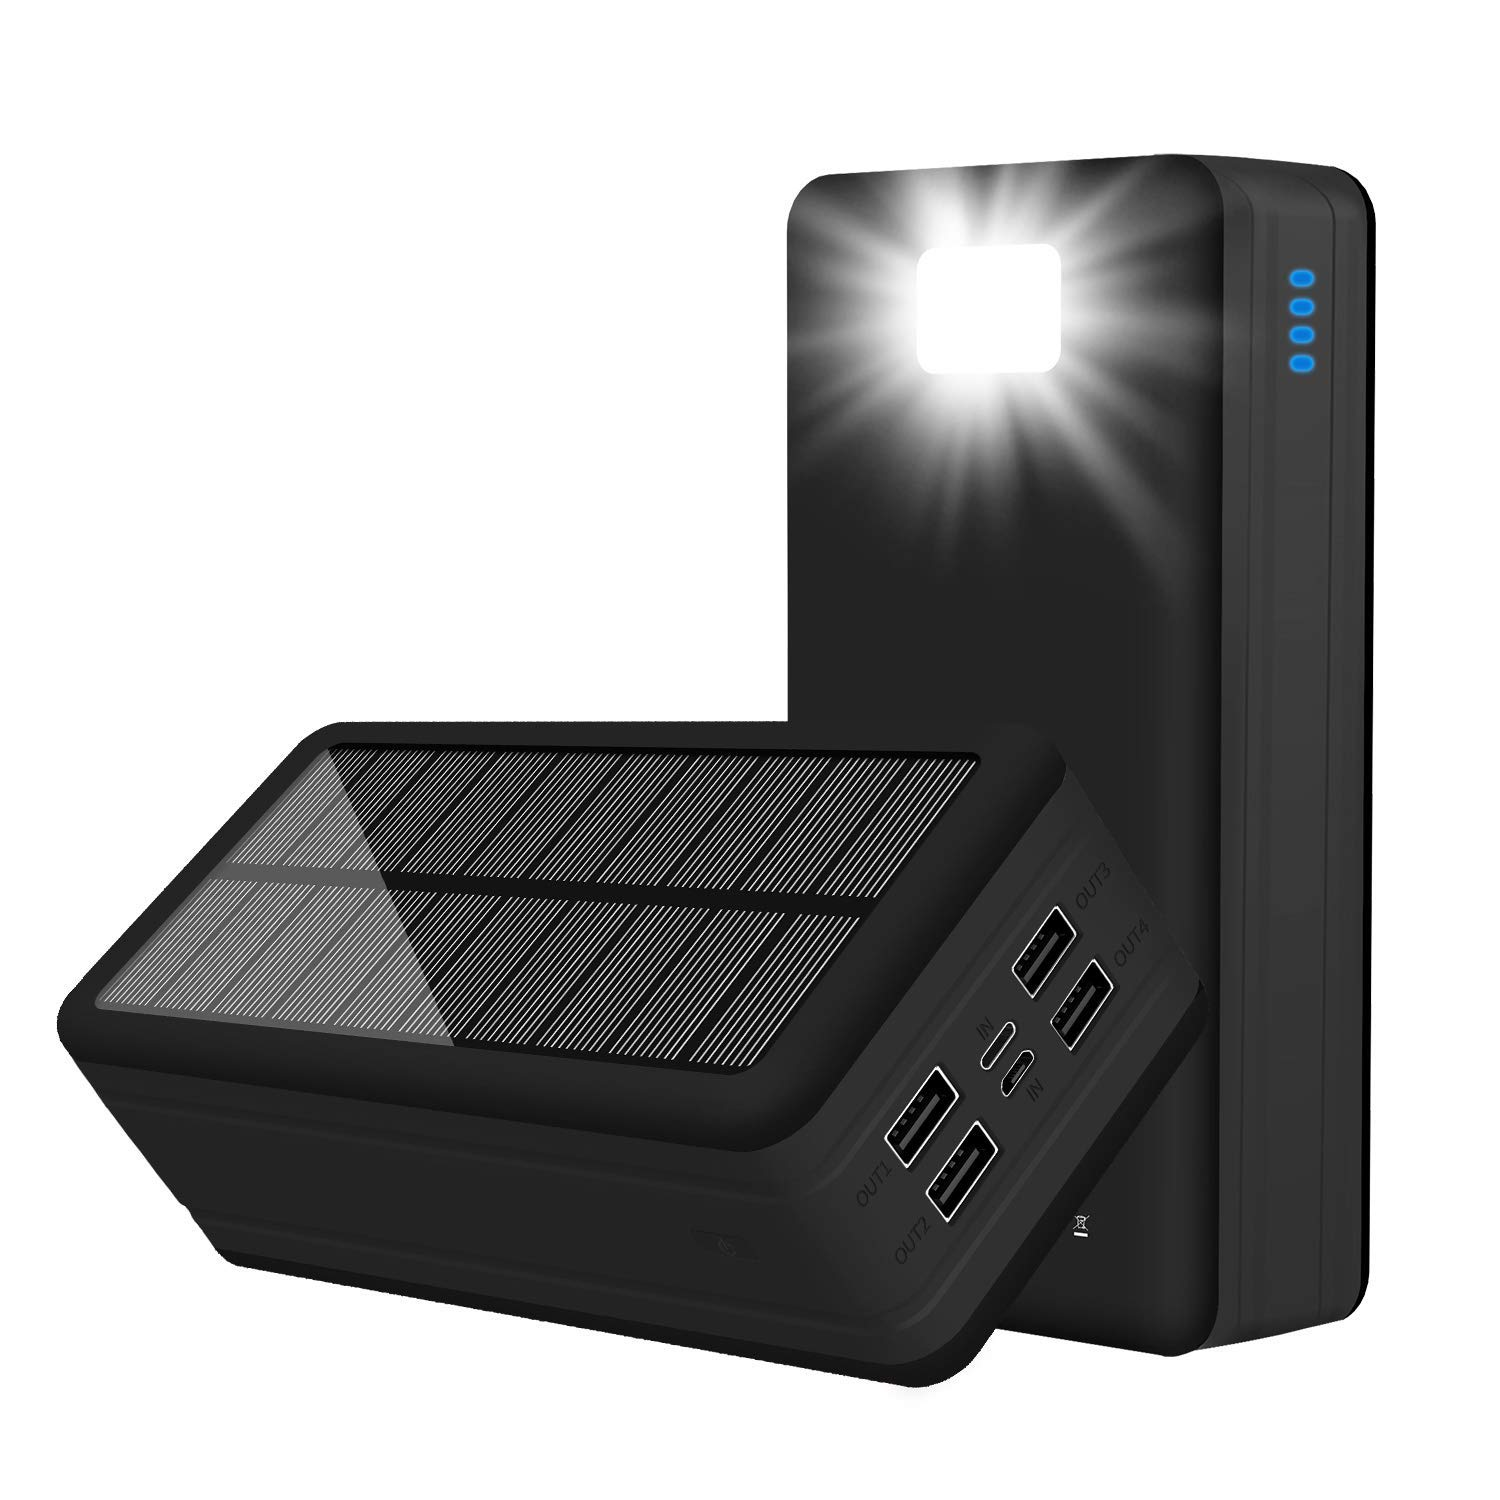 PSOOO Solar Power Bank 50000mAh Phone Charger for Caming Supply with 4 Output 2 Input Ports Type C USB Charging Flashlight Huge Capacity(Black)